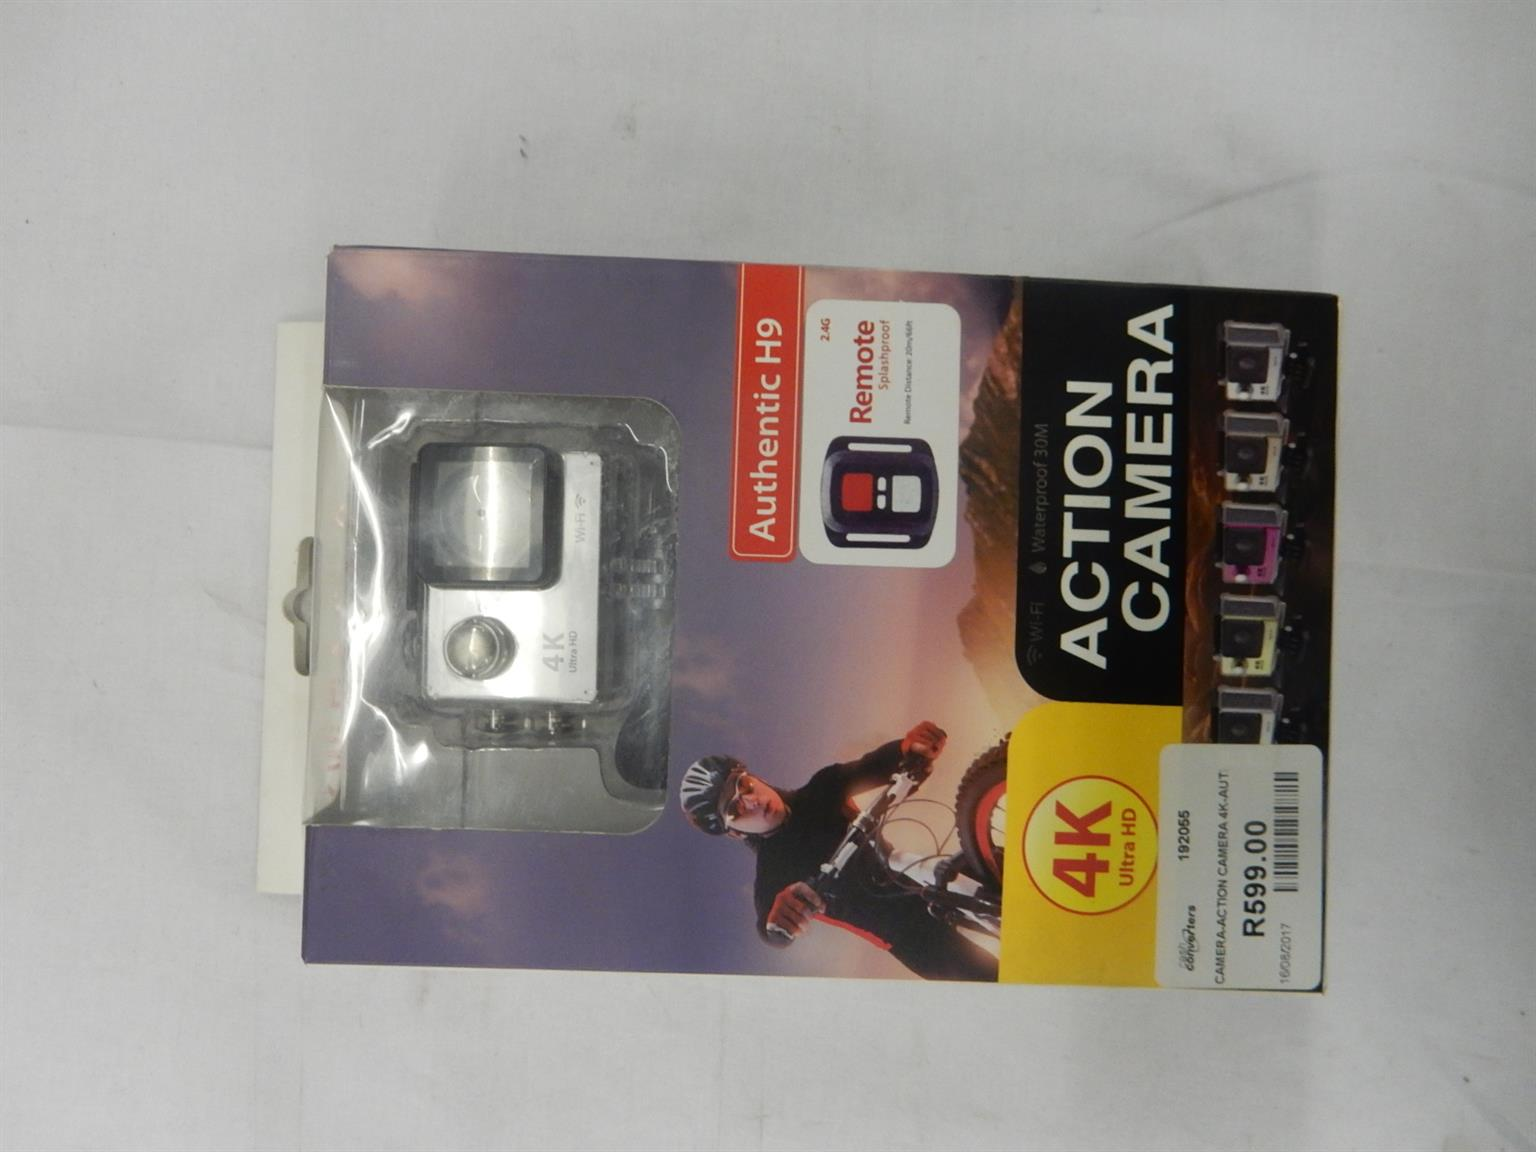 Brand new Authentic H9 Action Camera